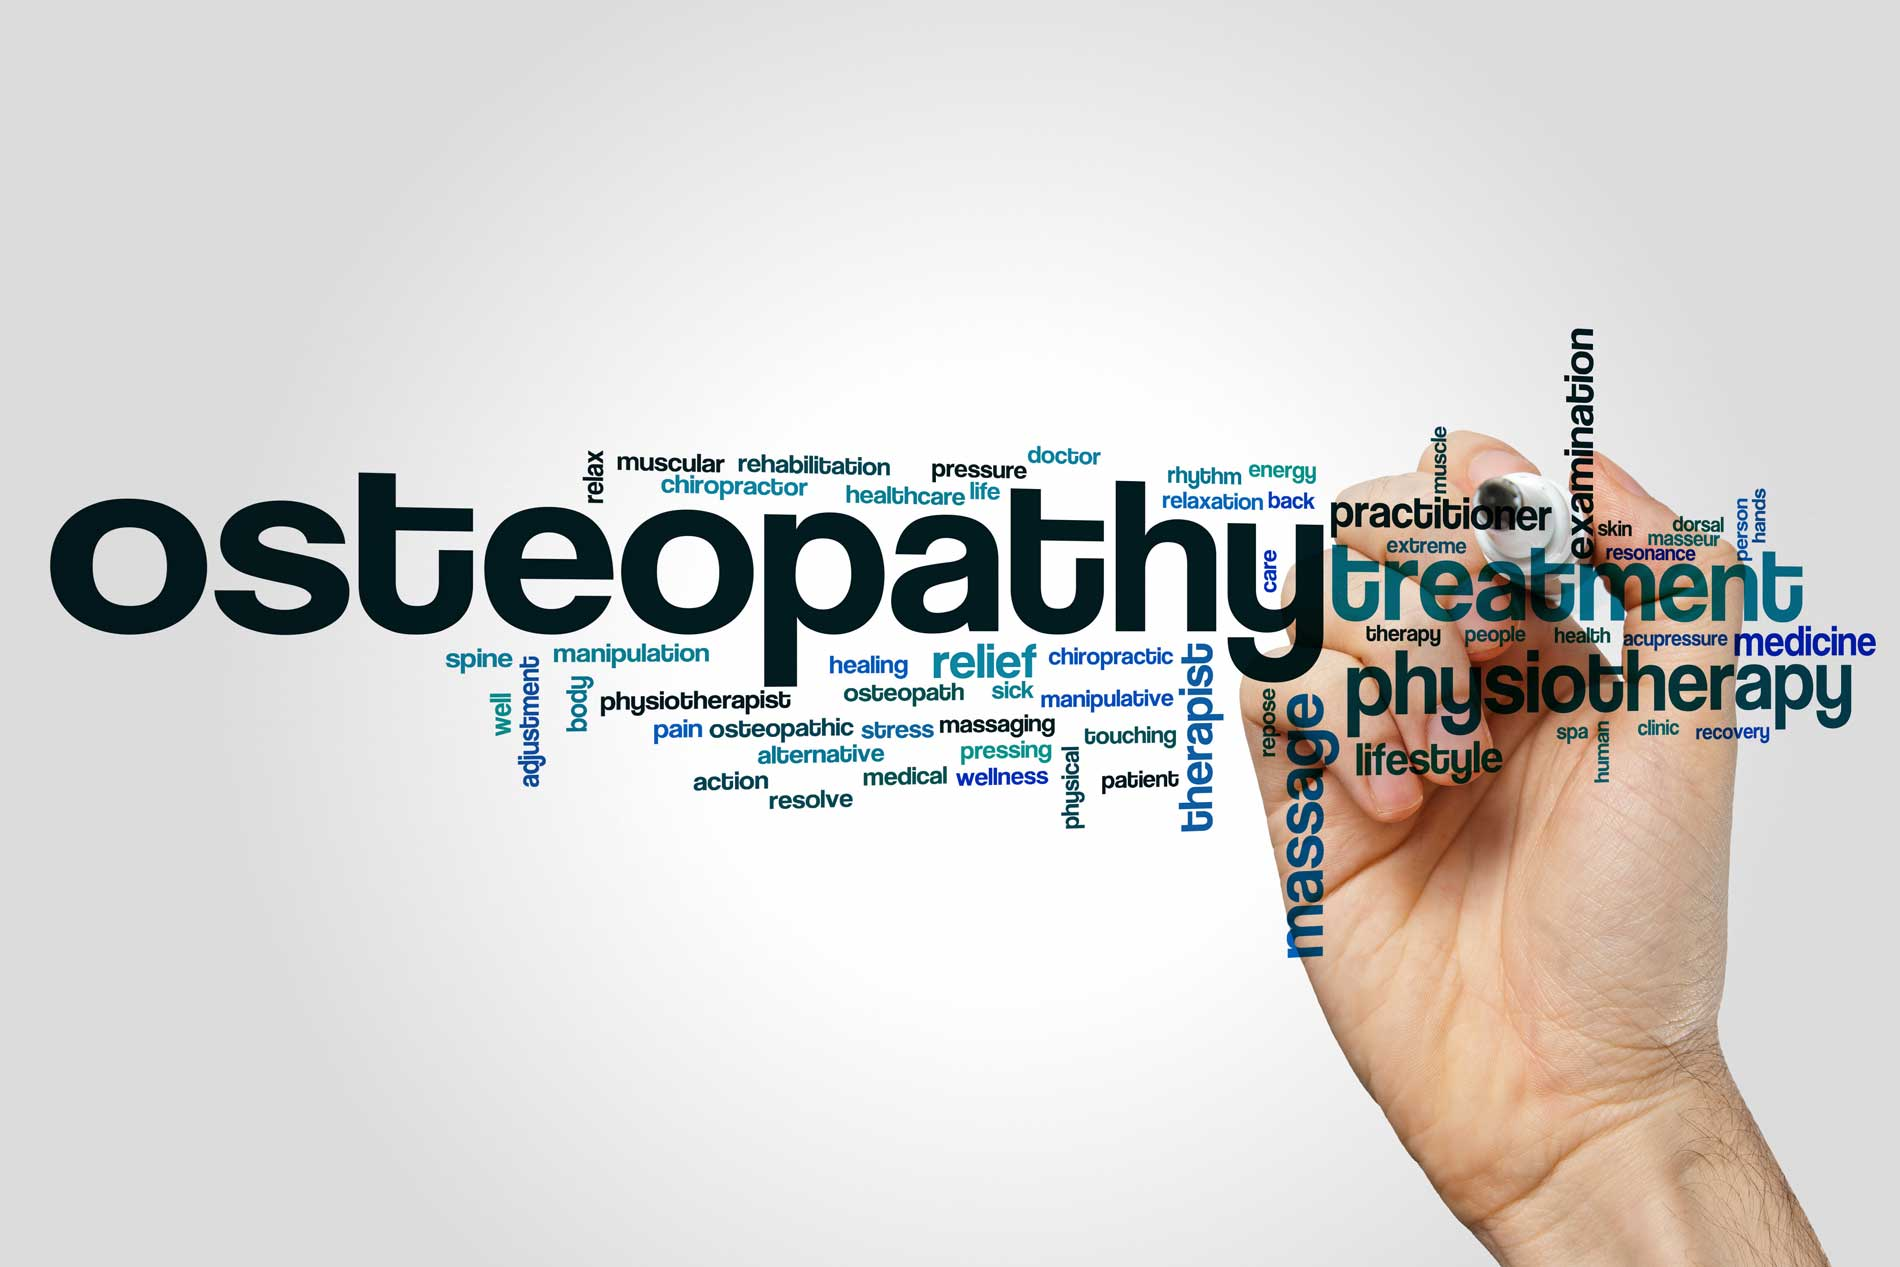 Osteopathy Overview